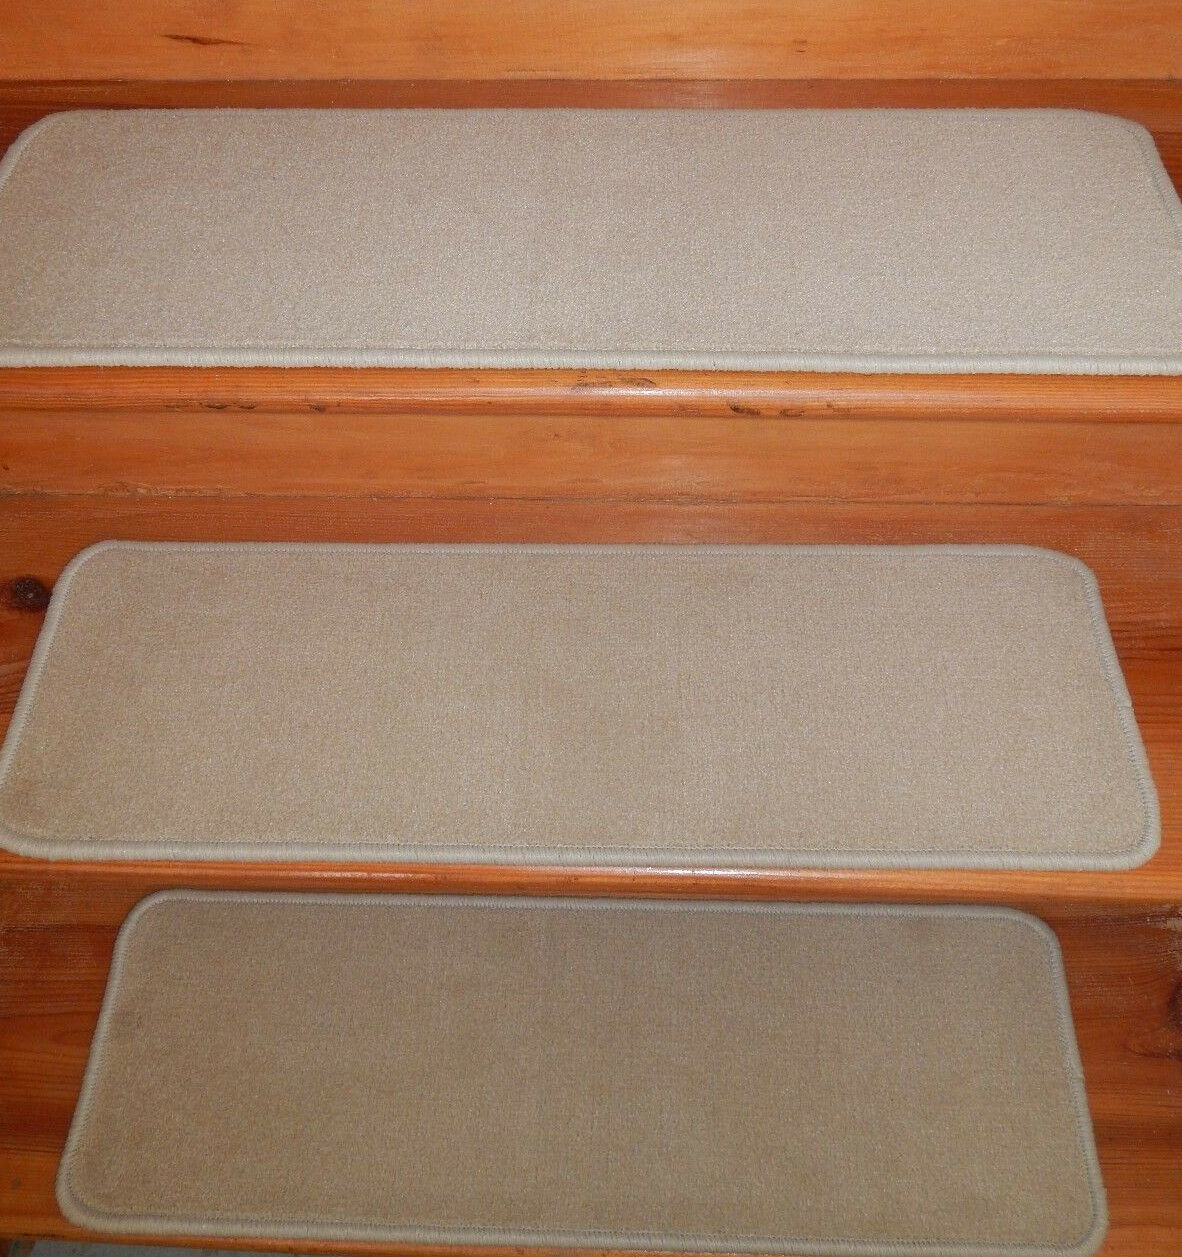 13 Step = 9'' x 28'' + 1 Landing 27'' x 28'' Stair Treads Wool Blend carpet  .